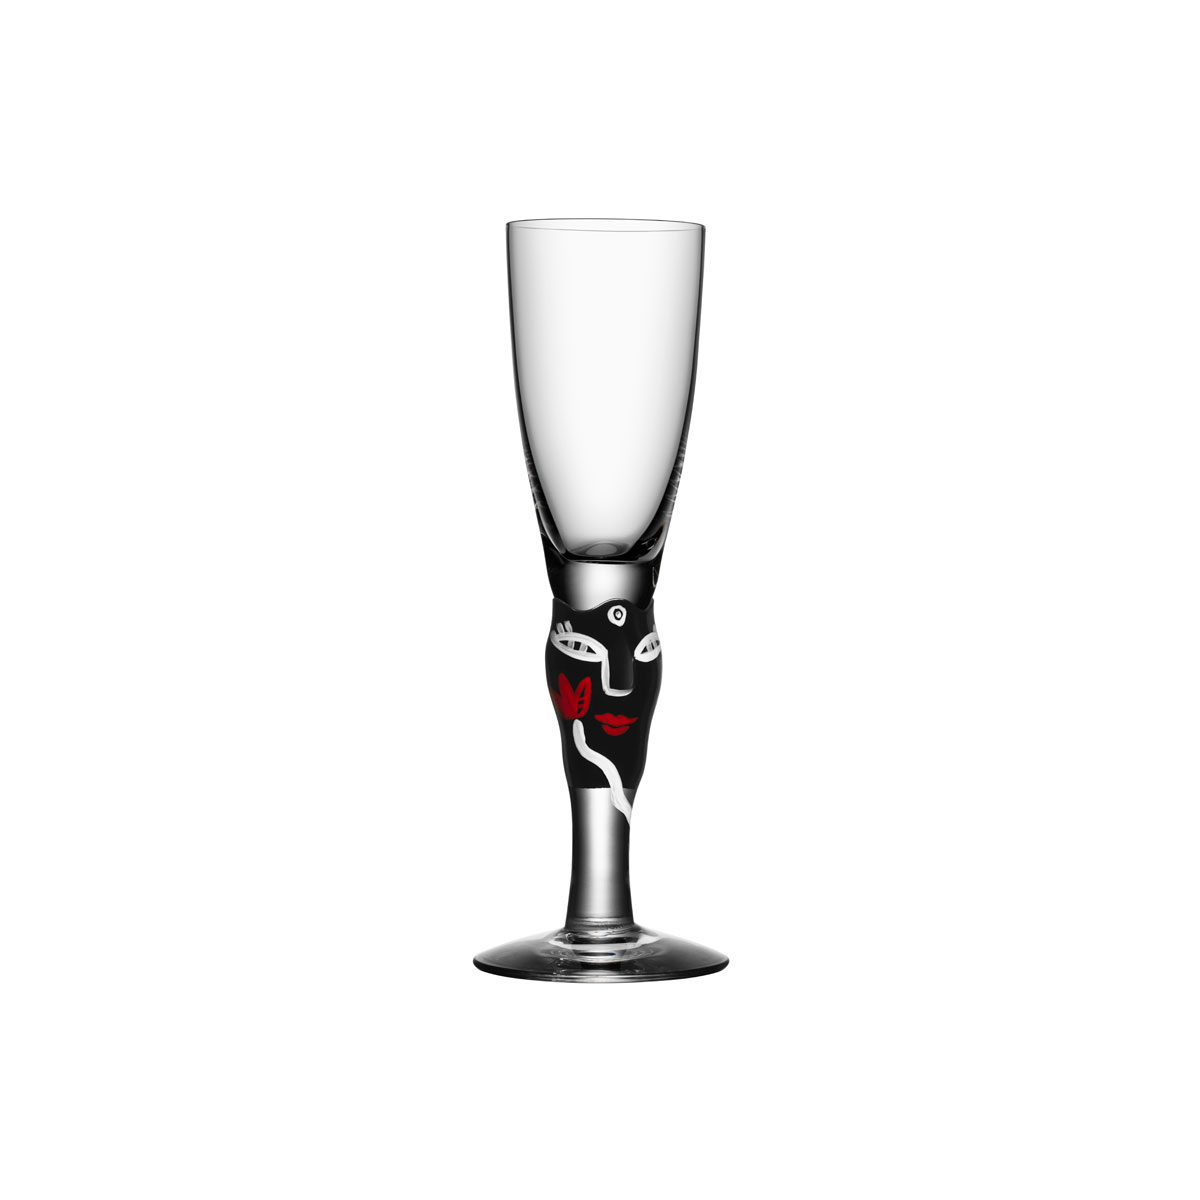 Kosta Boda Open Minds Crystal Shot Glass, Black, Single